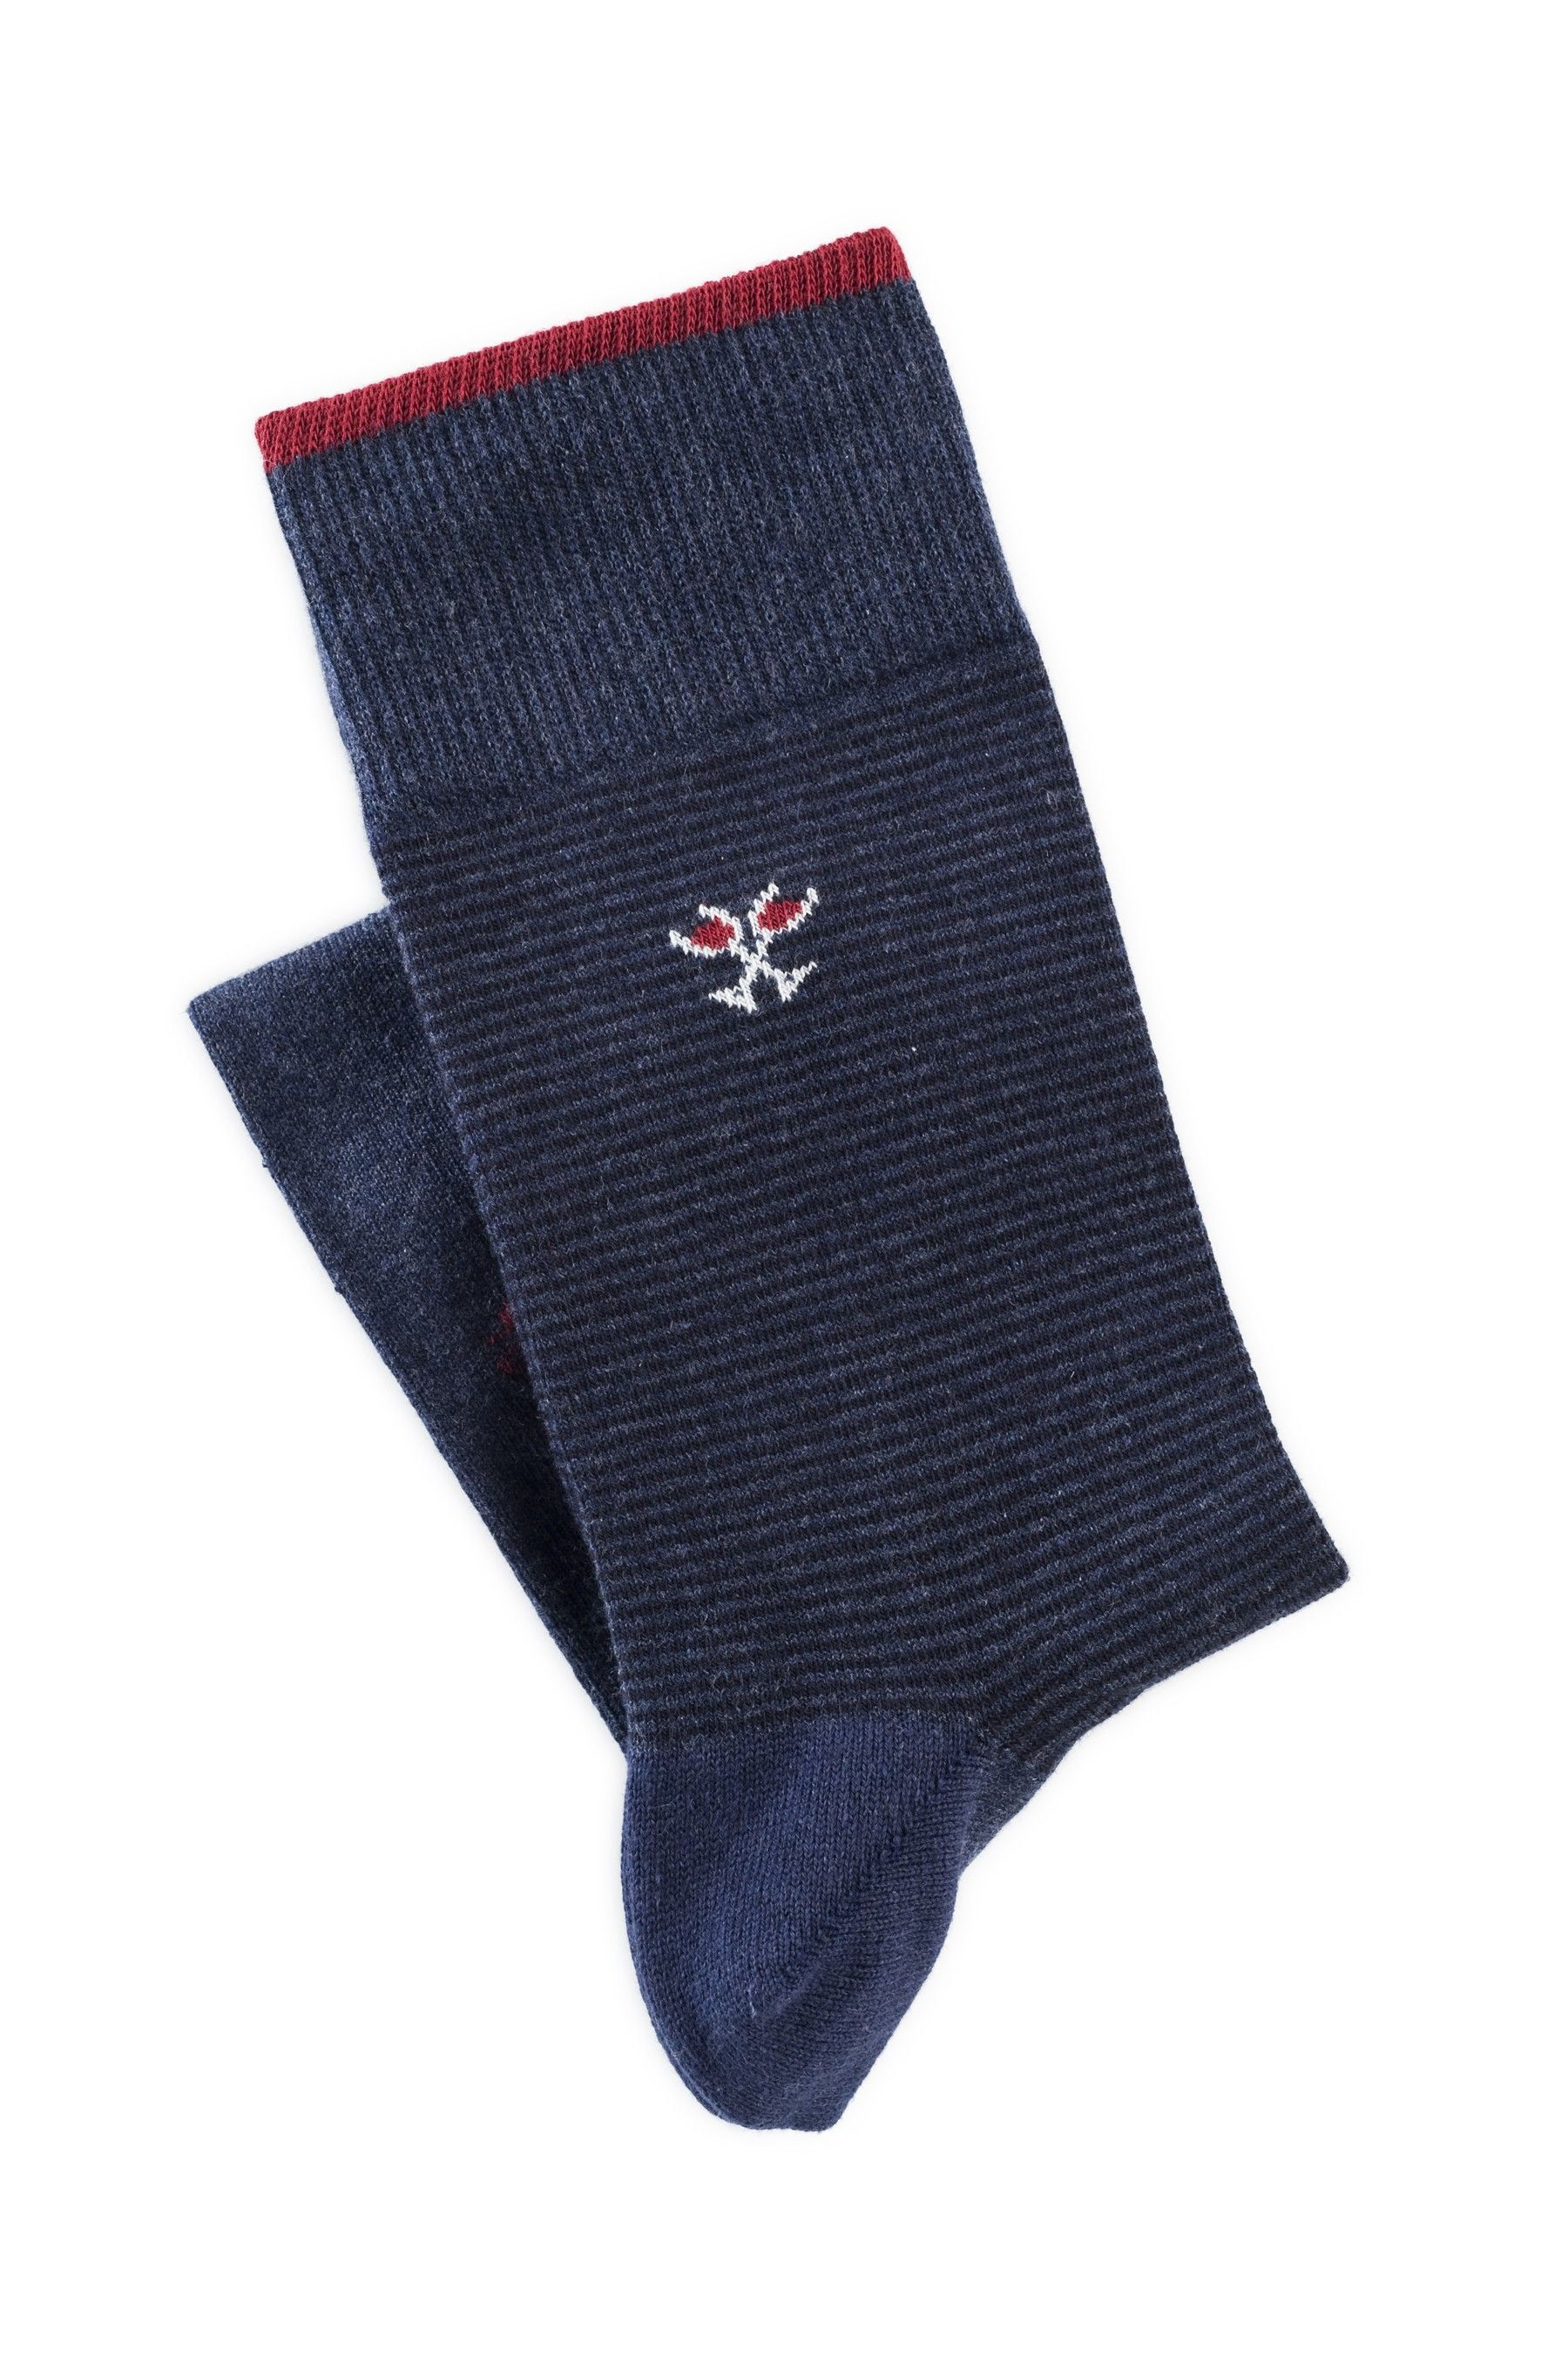 Chaussettes Homme Bleu Marine Made In France Mode Motif